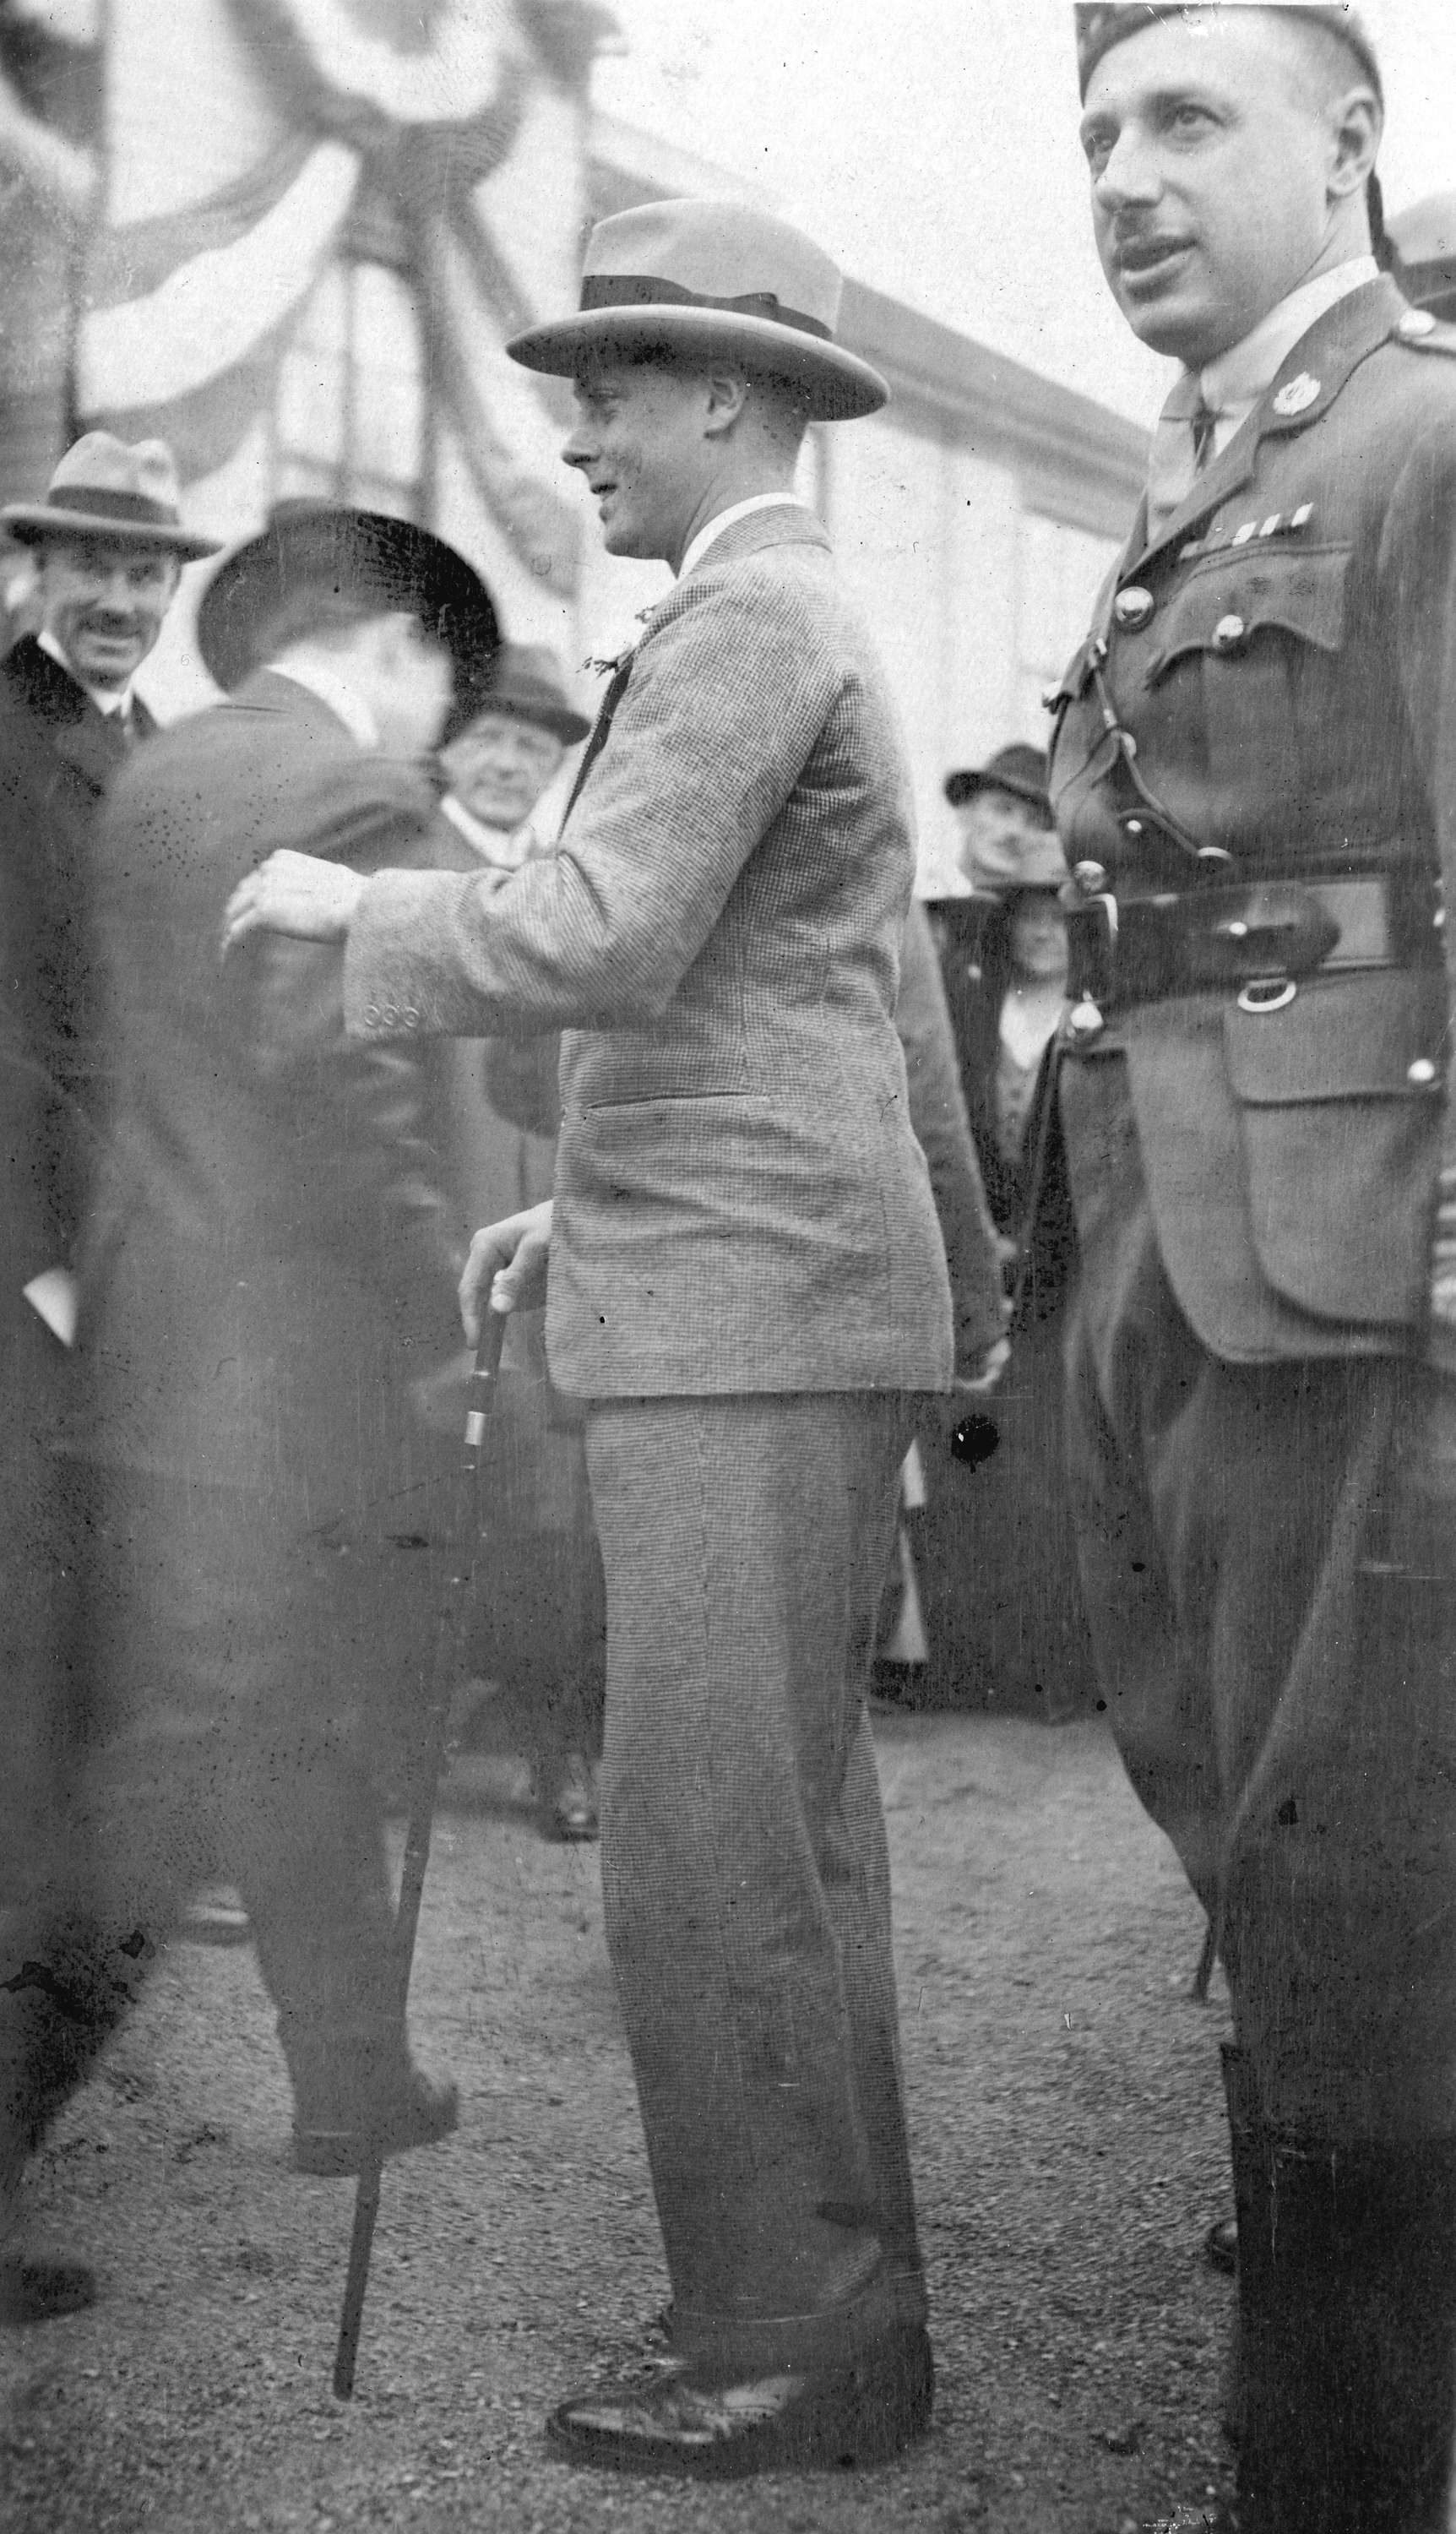 The Prince of Wales (later King Edward VIII) in civilian clothes in Vancouver in 1919 (Public domain)